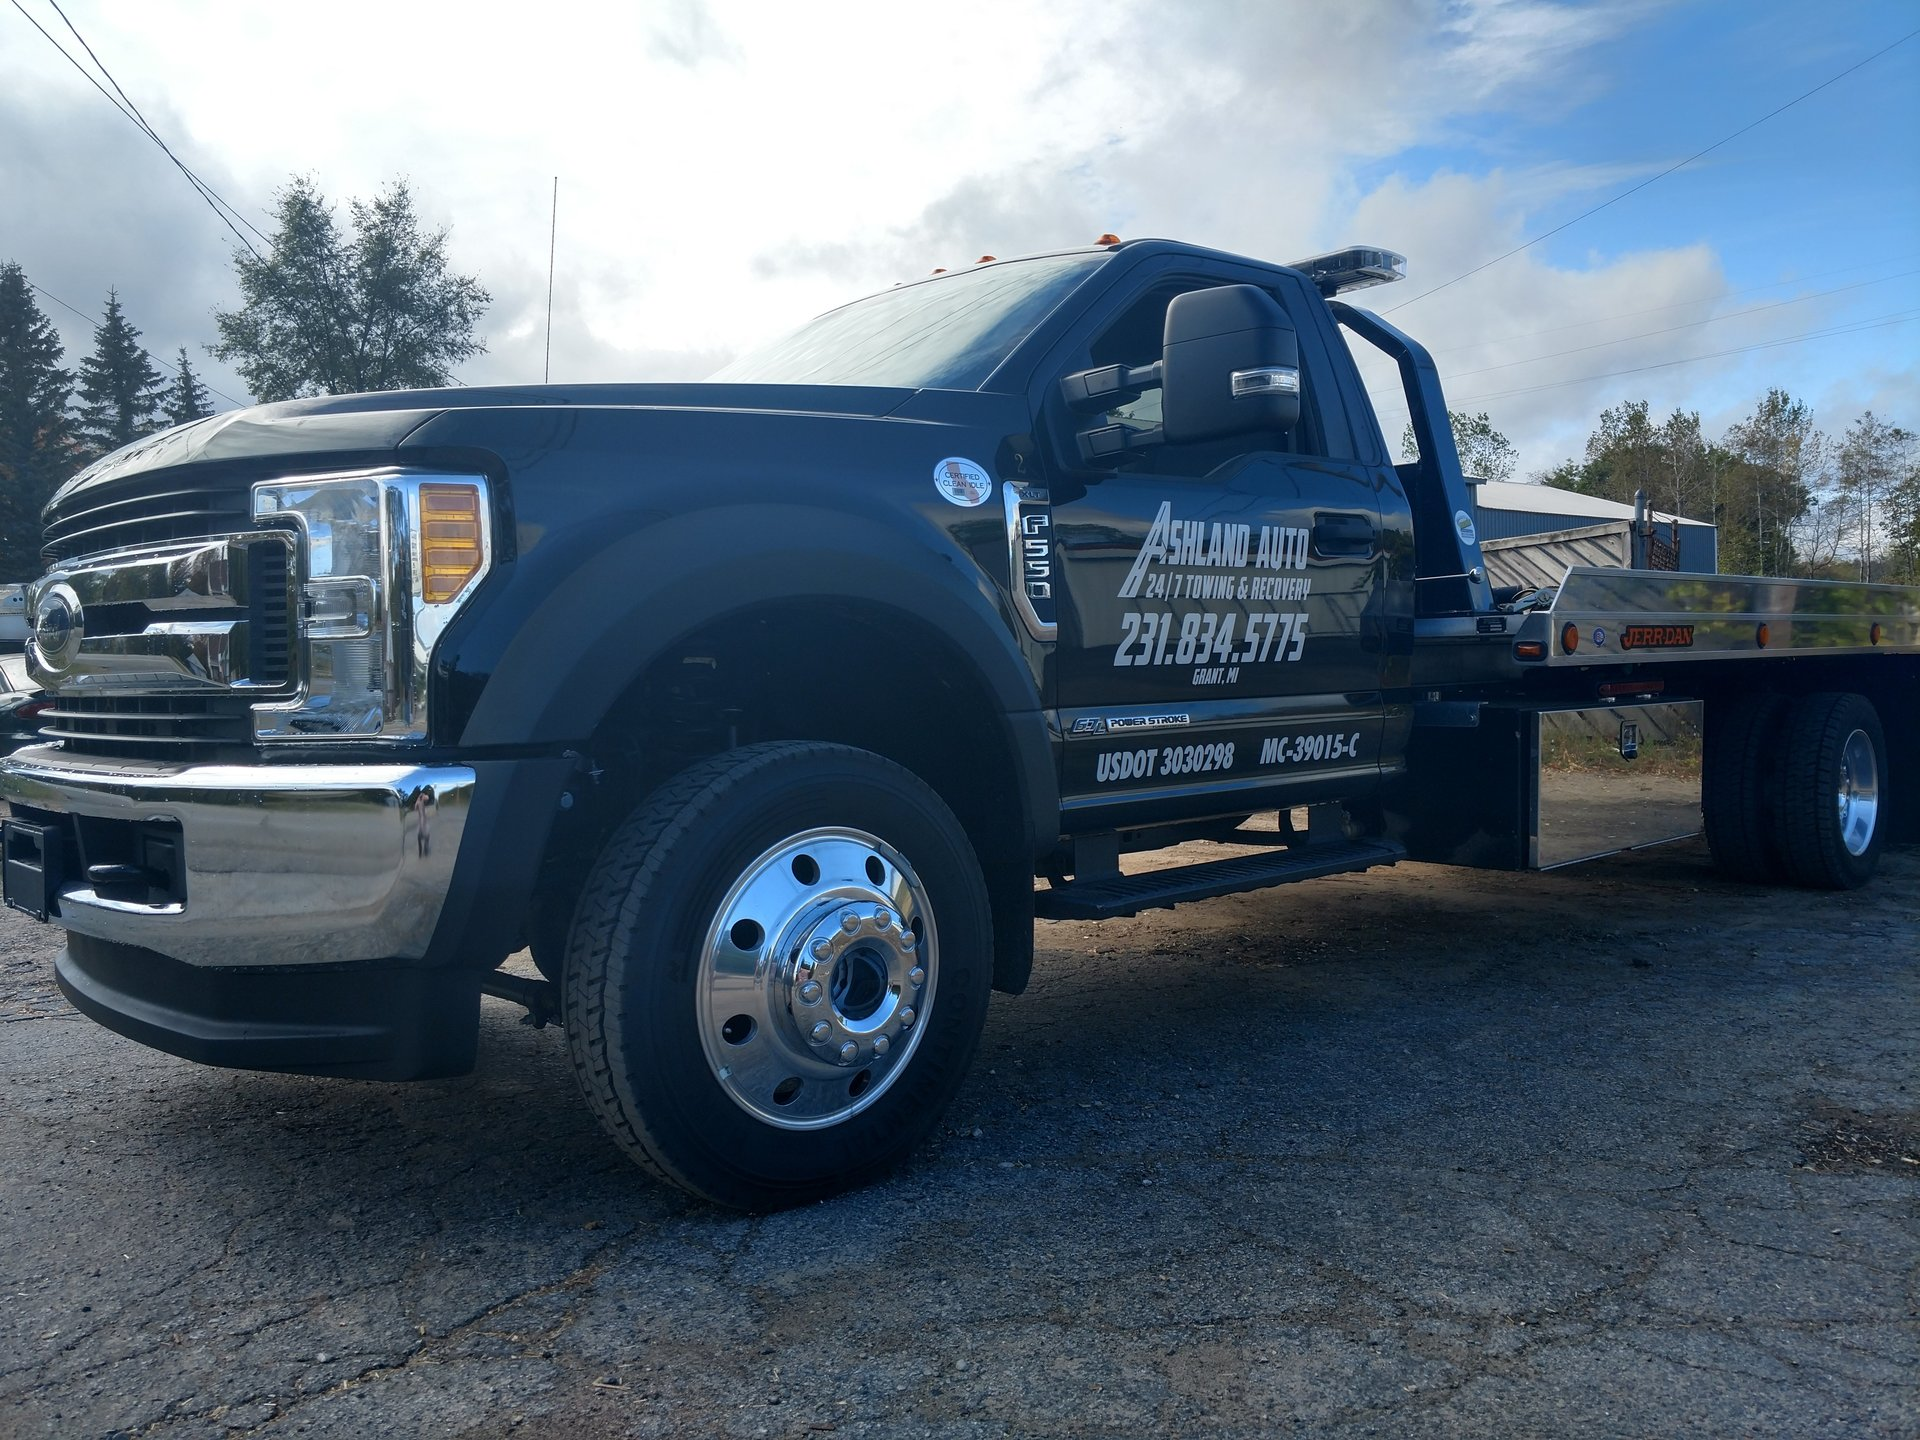 Auto Parts and 24 Hour Towing Service in Grant, Michigan